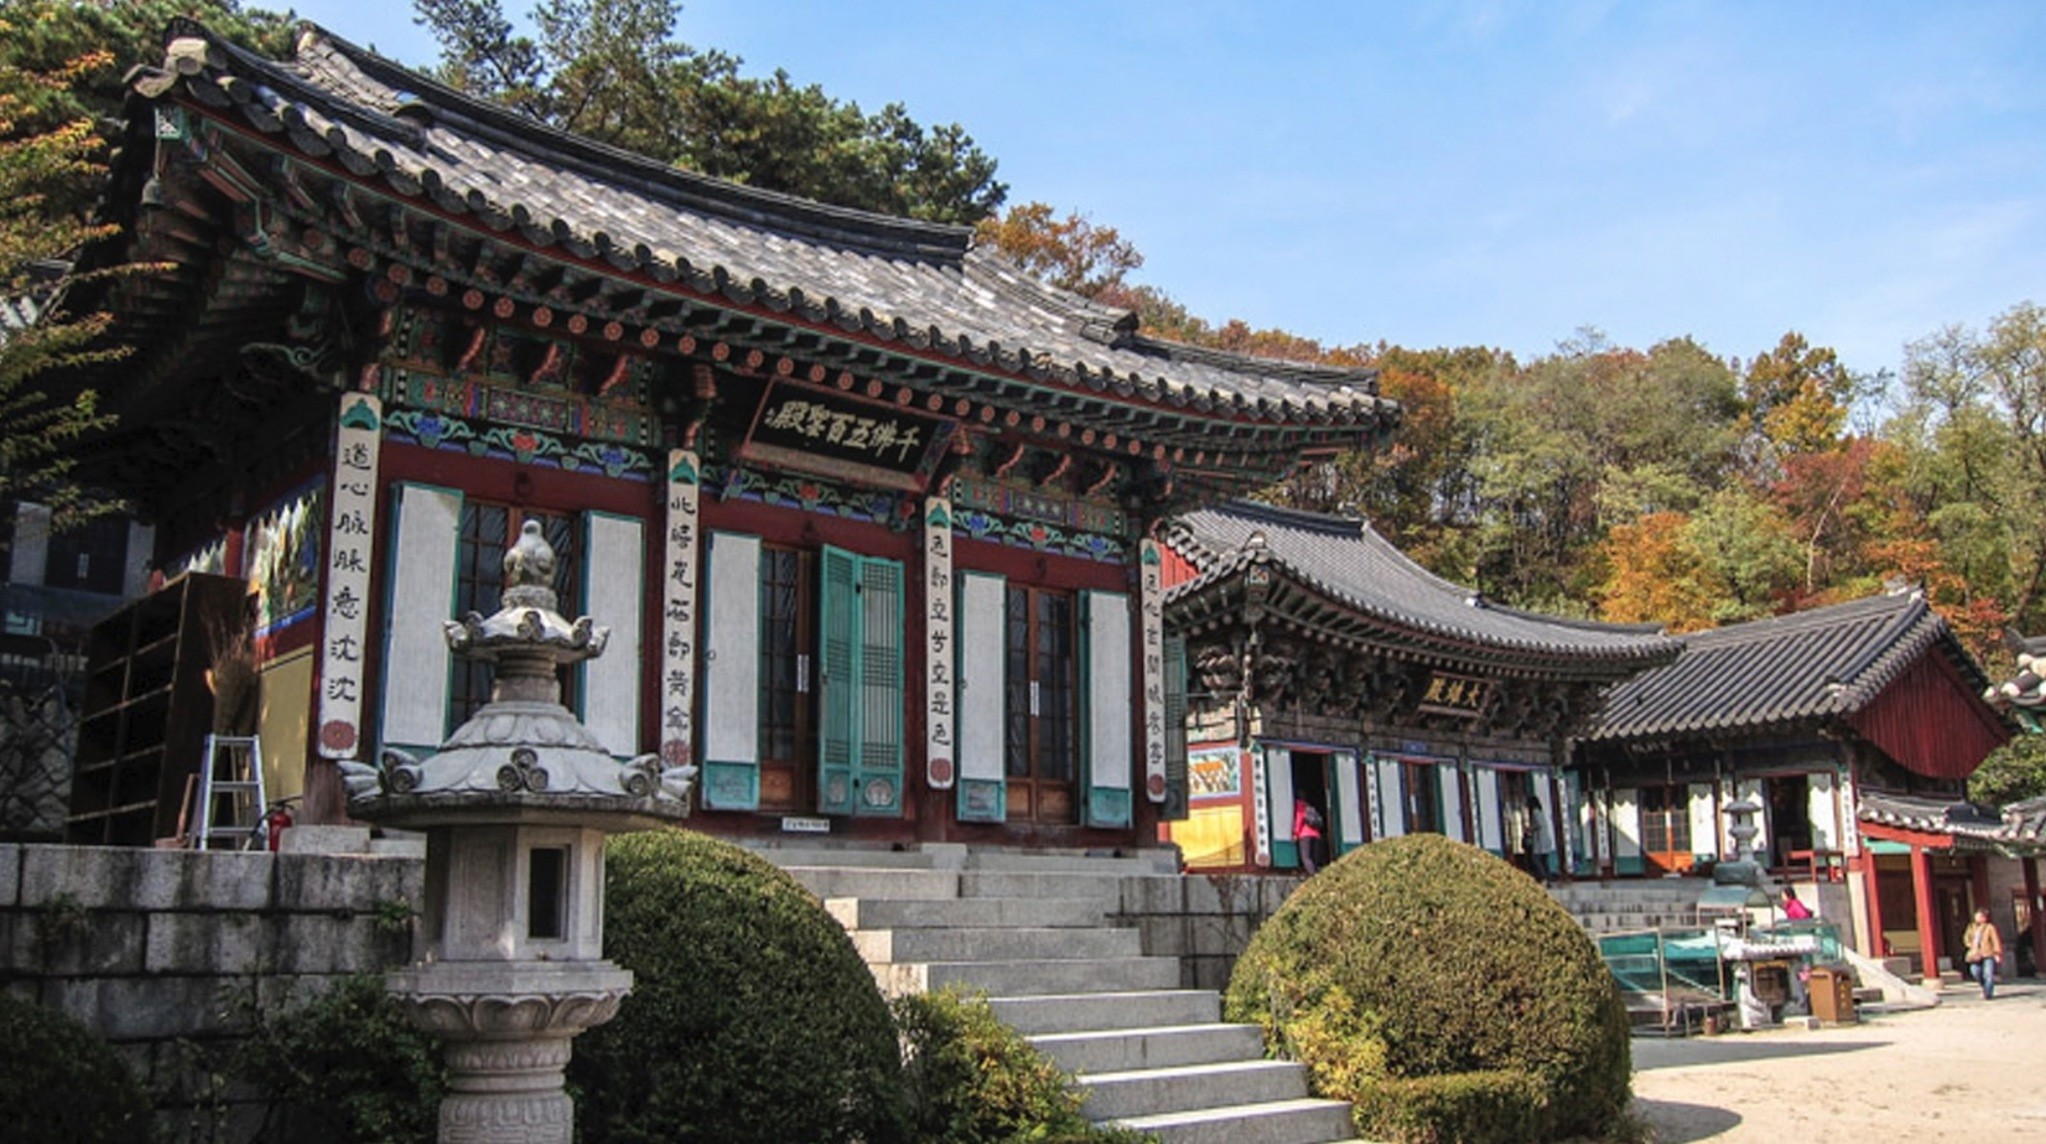 Although Hwagyesa Temple is located in the heart of Seoul, the surrounding mountains and landscapes offer an escape from the urban life.